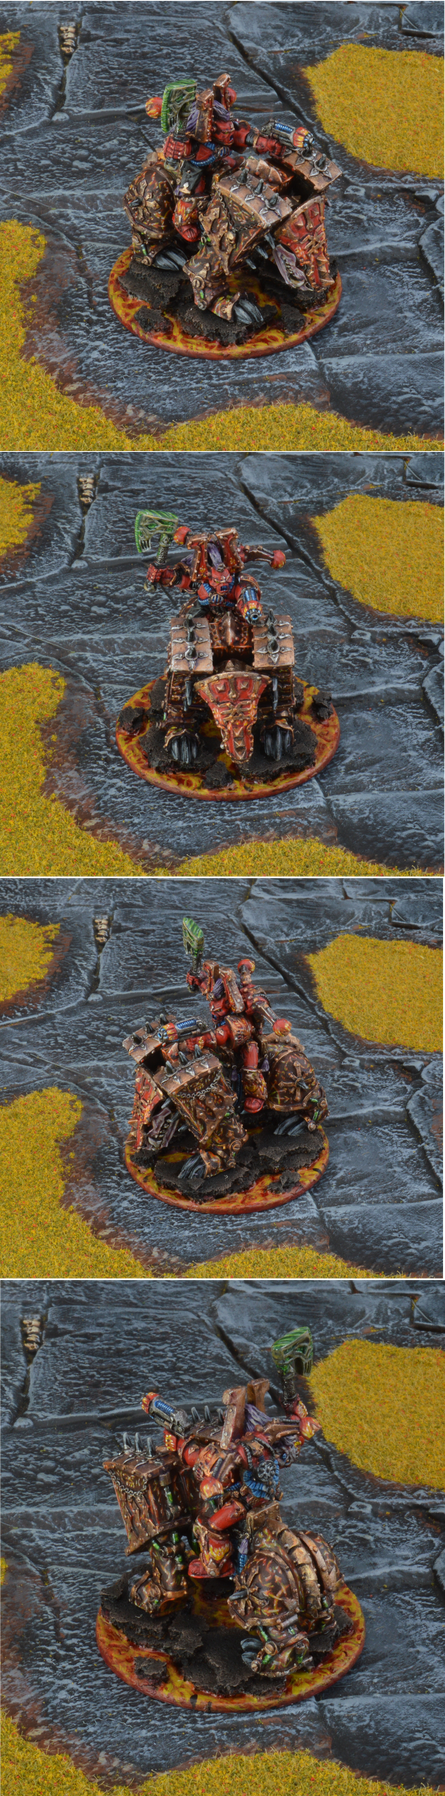 Vintage 1994 Chaos Lord of Khorne On Juggernaut by Minisnatcher